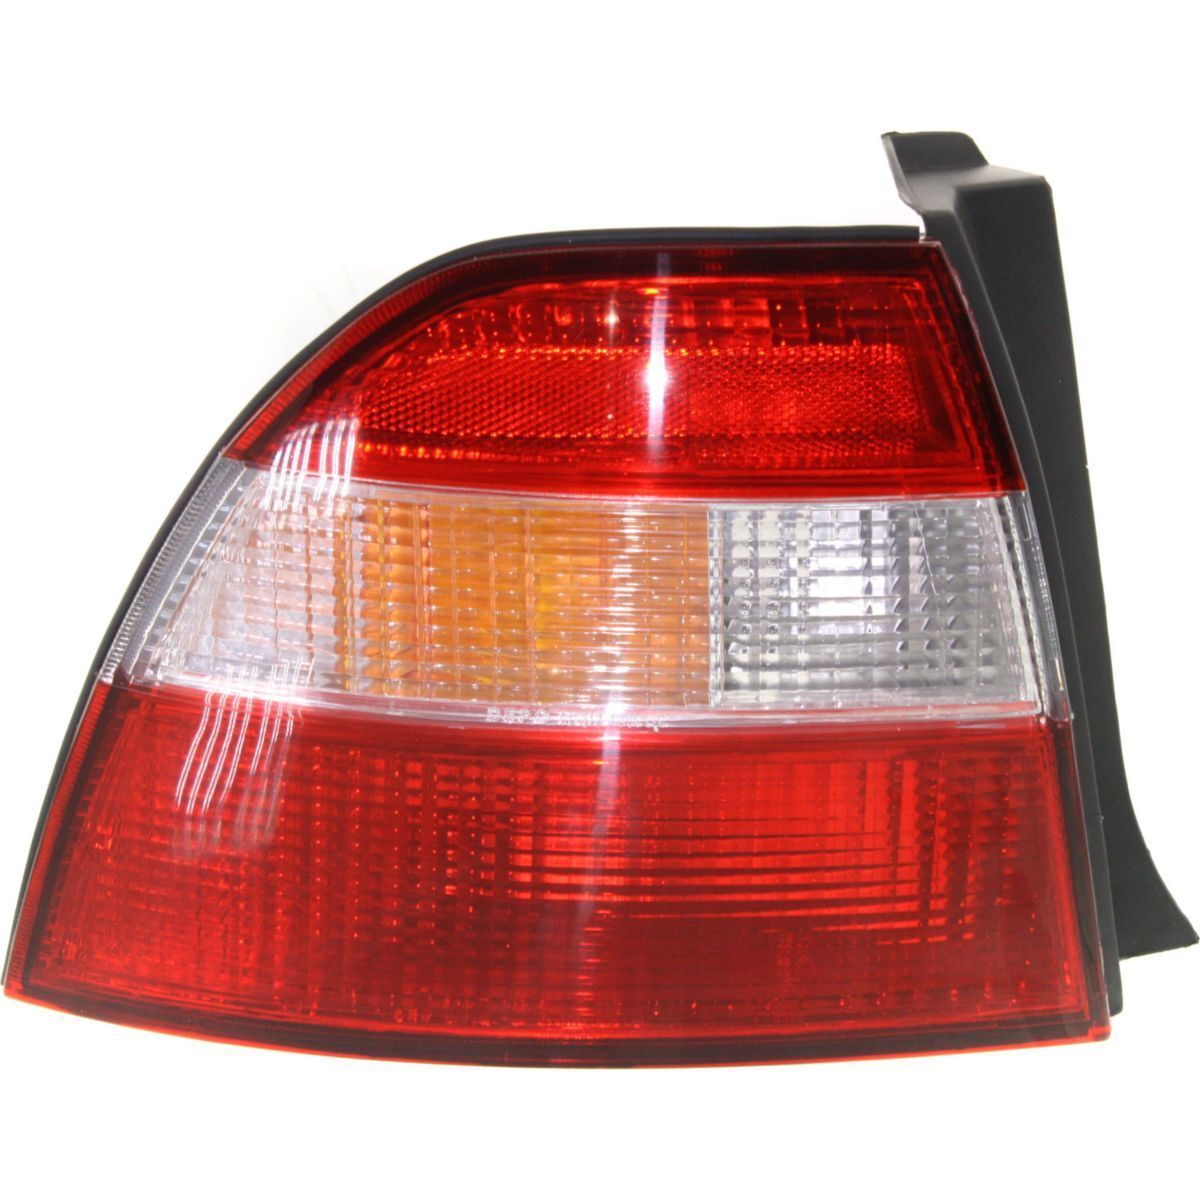 <b> New Tail Light Assembly Driver Side Fits 1994-1995 Honda Accord HO2818105 33551SV4A01 <b>